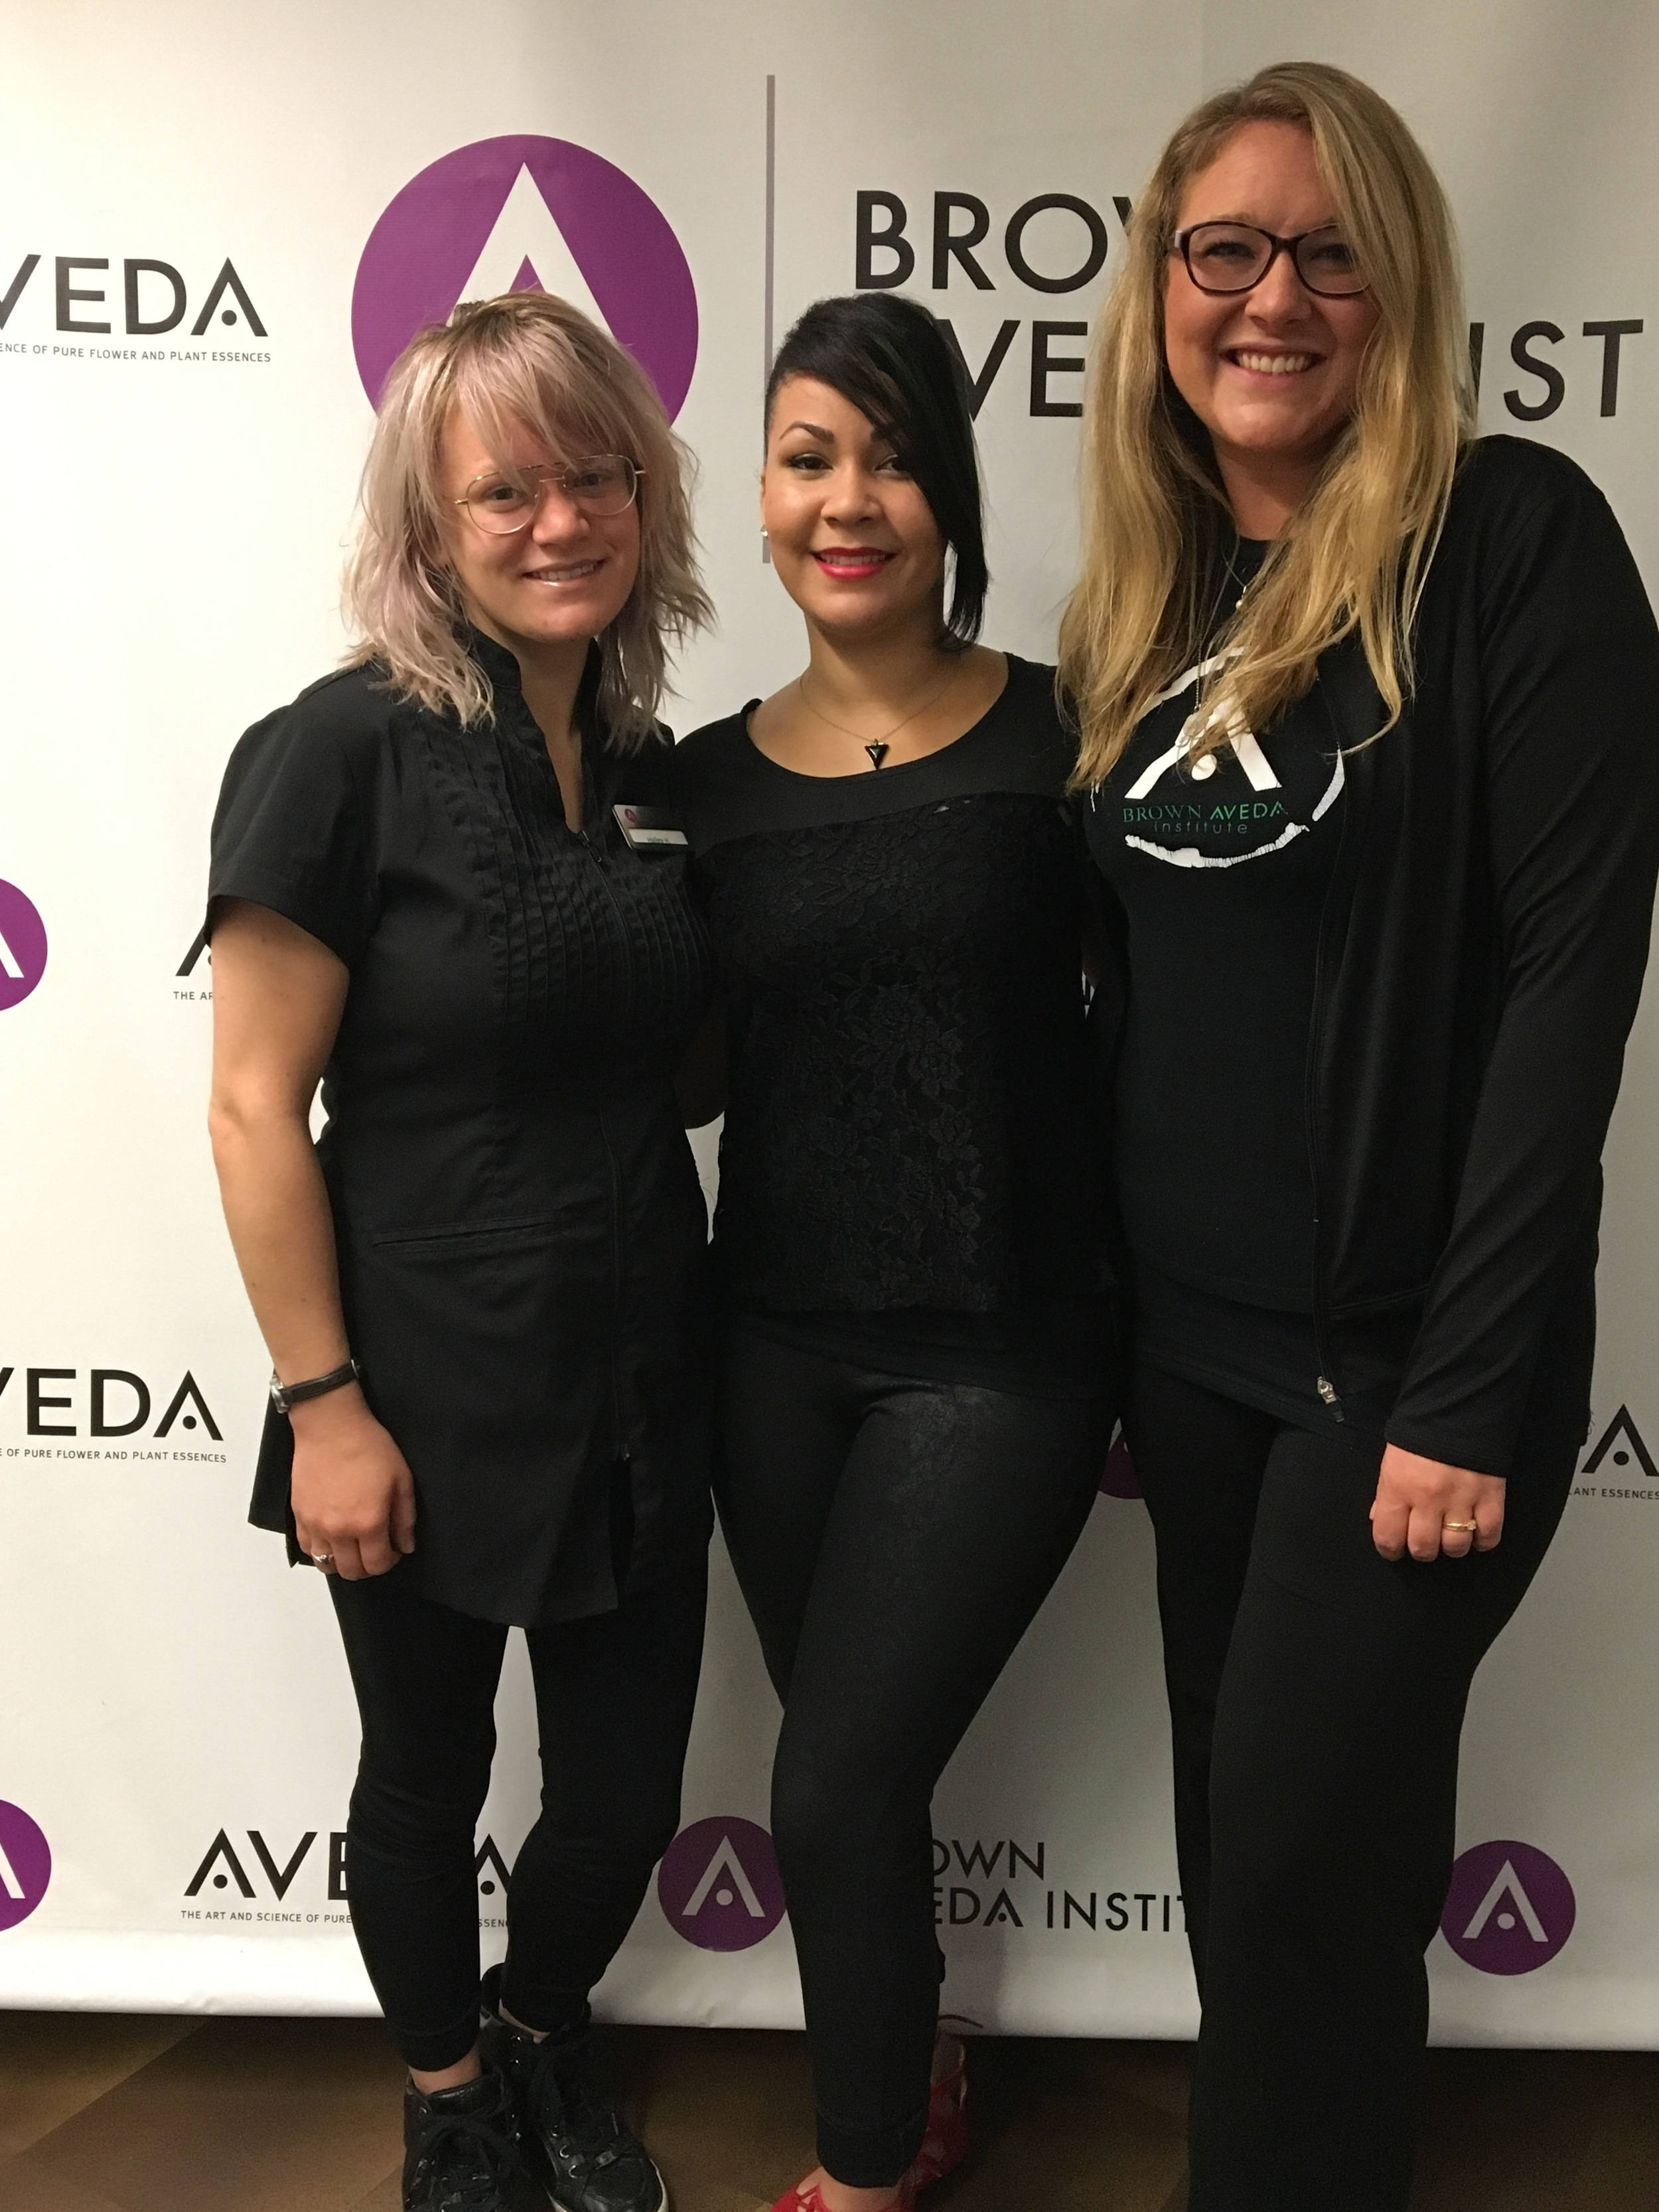 Brown Aveda student Hailey Hughes, educator Rose Marie Benitez, and student Dasha Olecki will be attending AVEDA's Midamerica show on September 30.